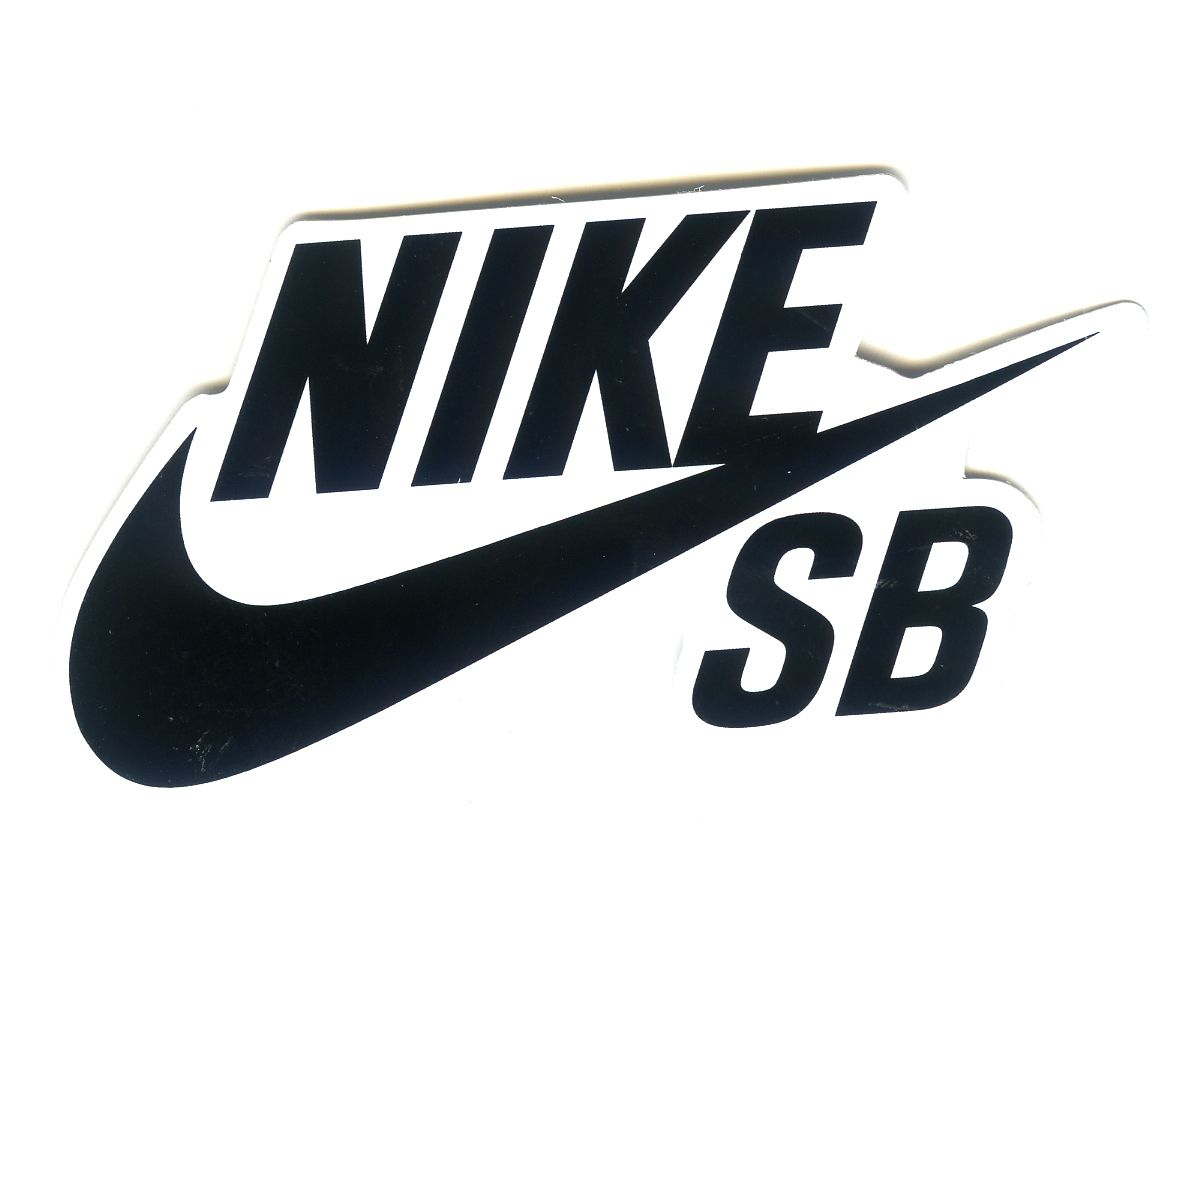 #1586 NIKE SB Black logo 9x4.5 cm decal sticker